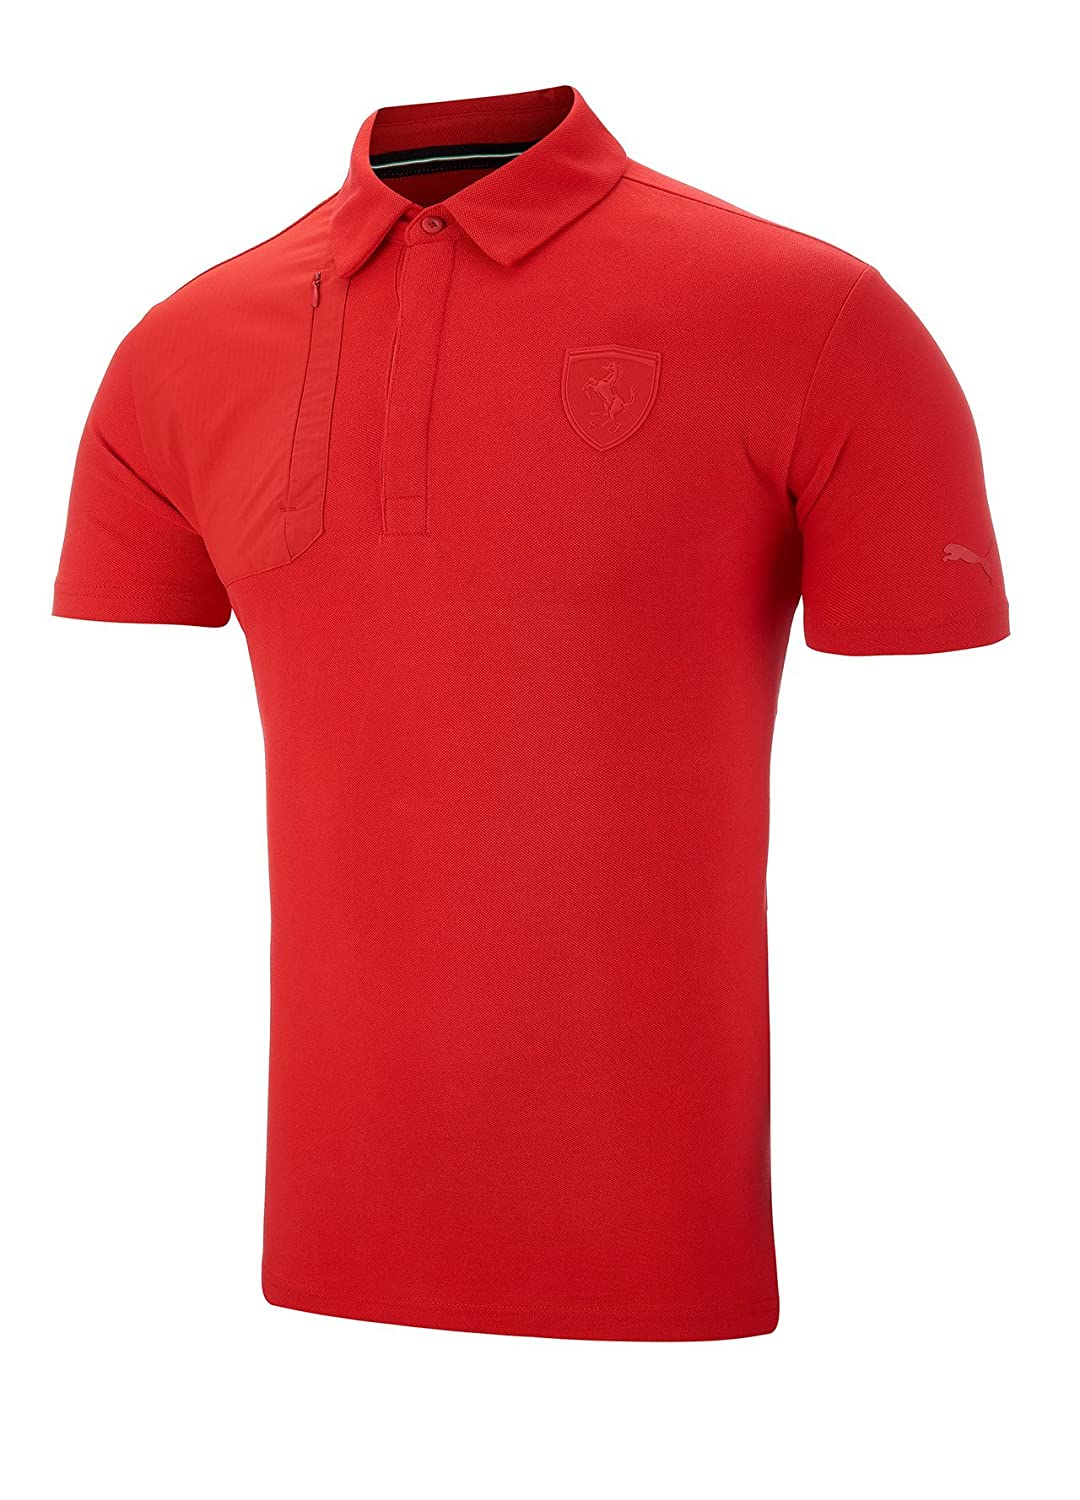 Polo Puma Ferrari Lifestyle, Hombre, rojo, Medium: Amazon.es ...